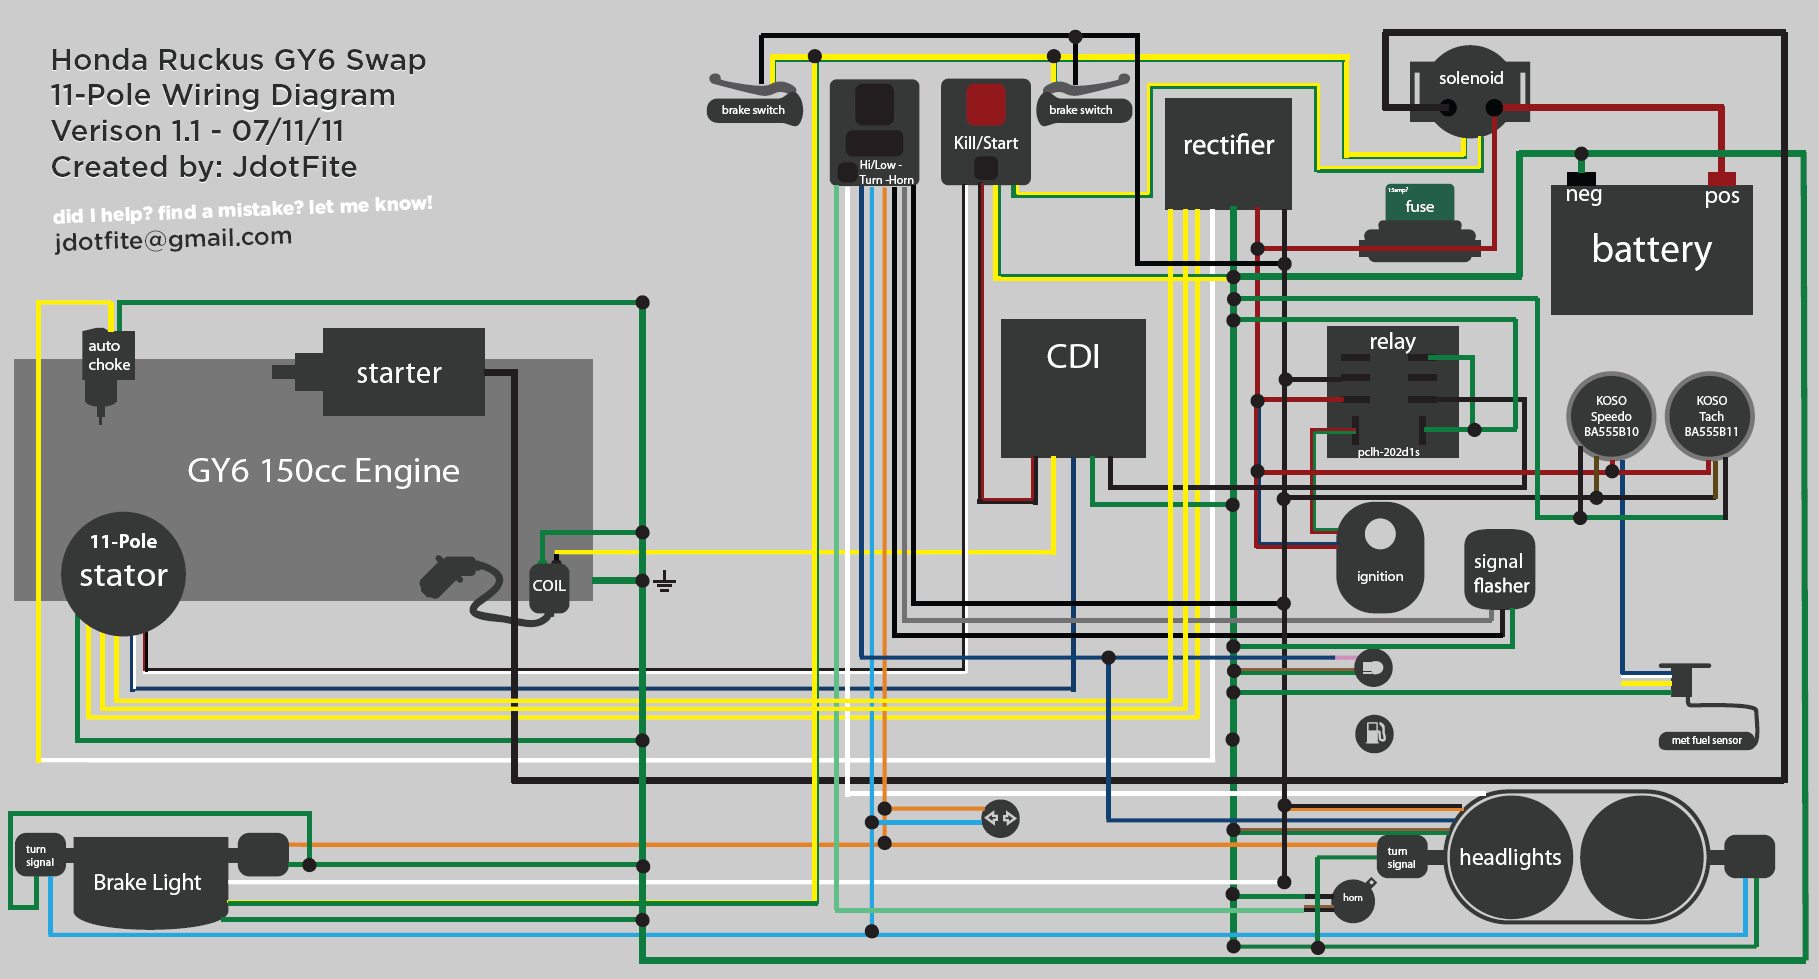 taotao 150cc scooter wiring diagram single phase to 3 inverter ruckus gy6 swap honda documentation